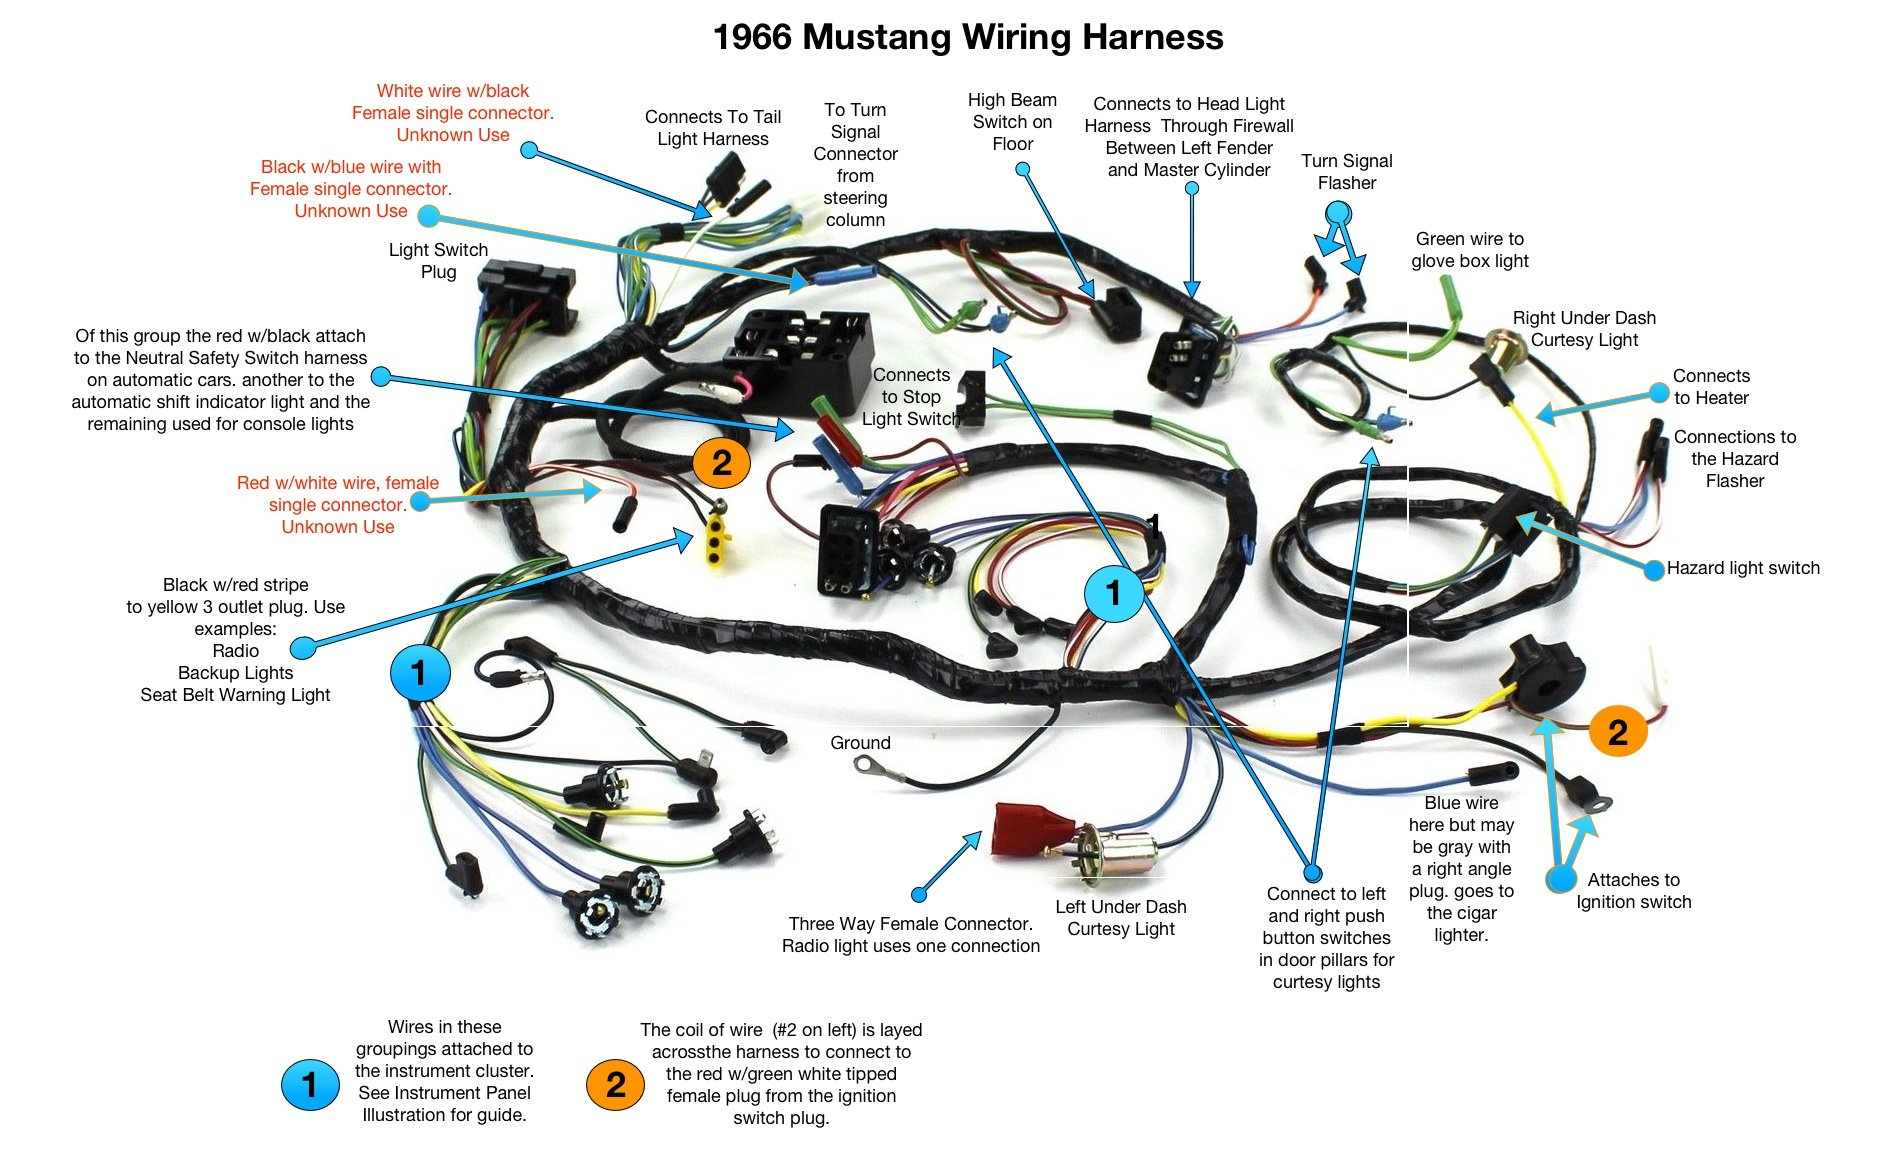 507585d1458686767 66 wiring harness diagram 66 mustang wiring harness wiring harness diagram readingrat net 1966 mustang wiring harness at readyjetset.co